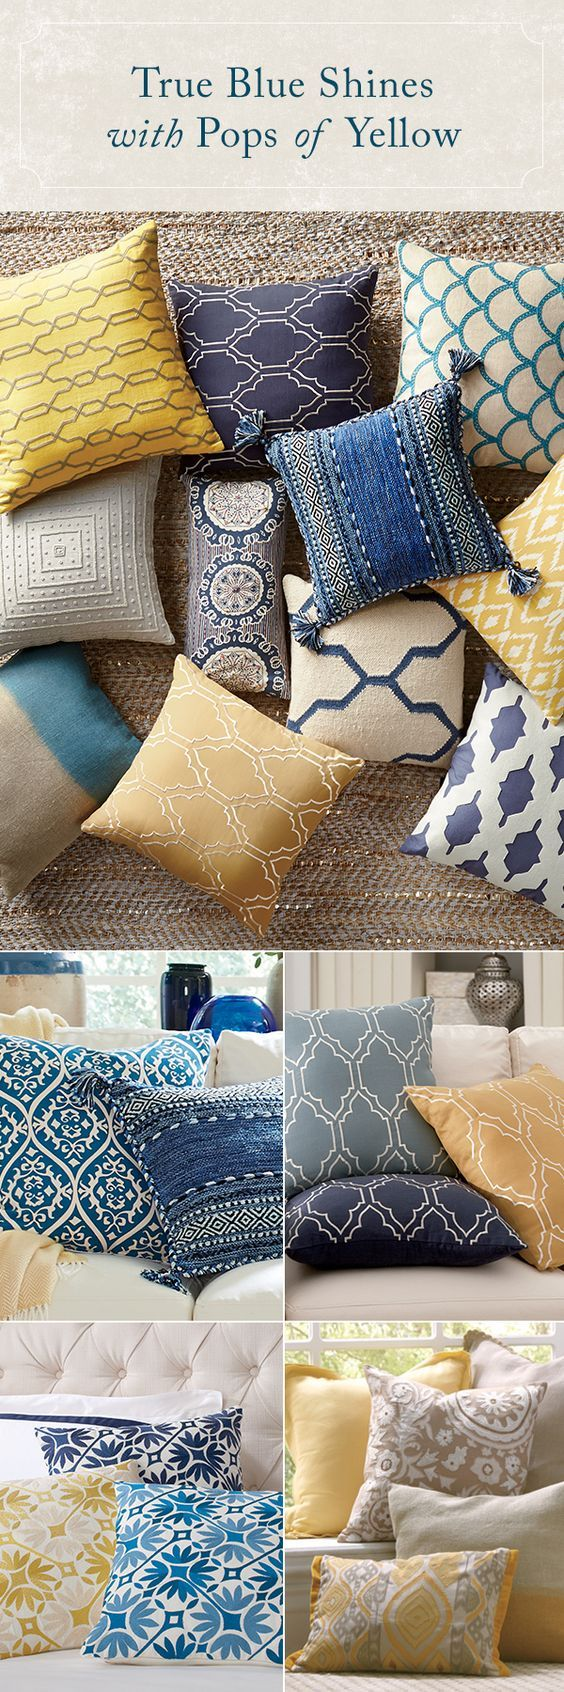 Diy Pillow Slipcover 45 - Looking For DIY Pillow Cover Ideas ?